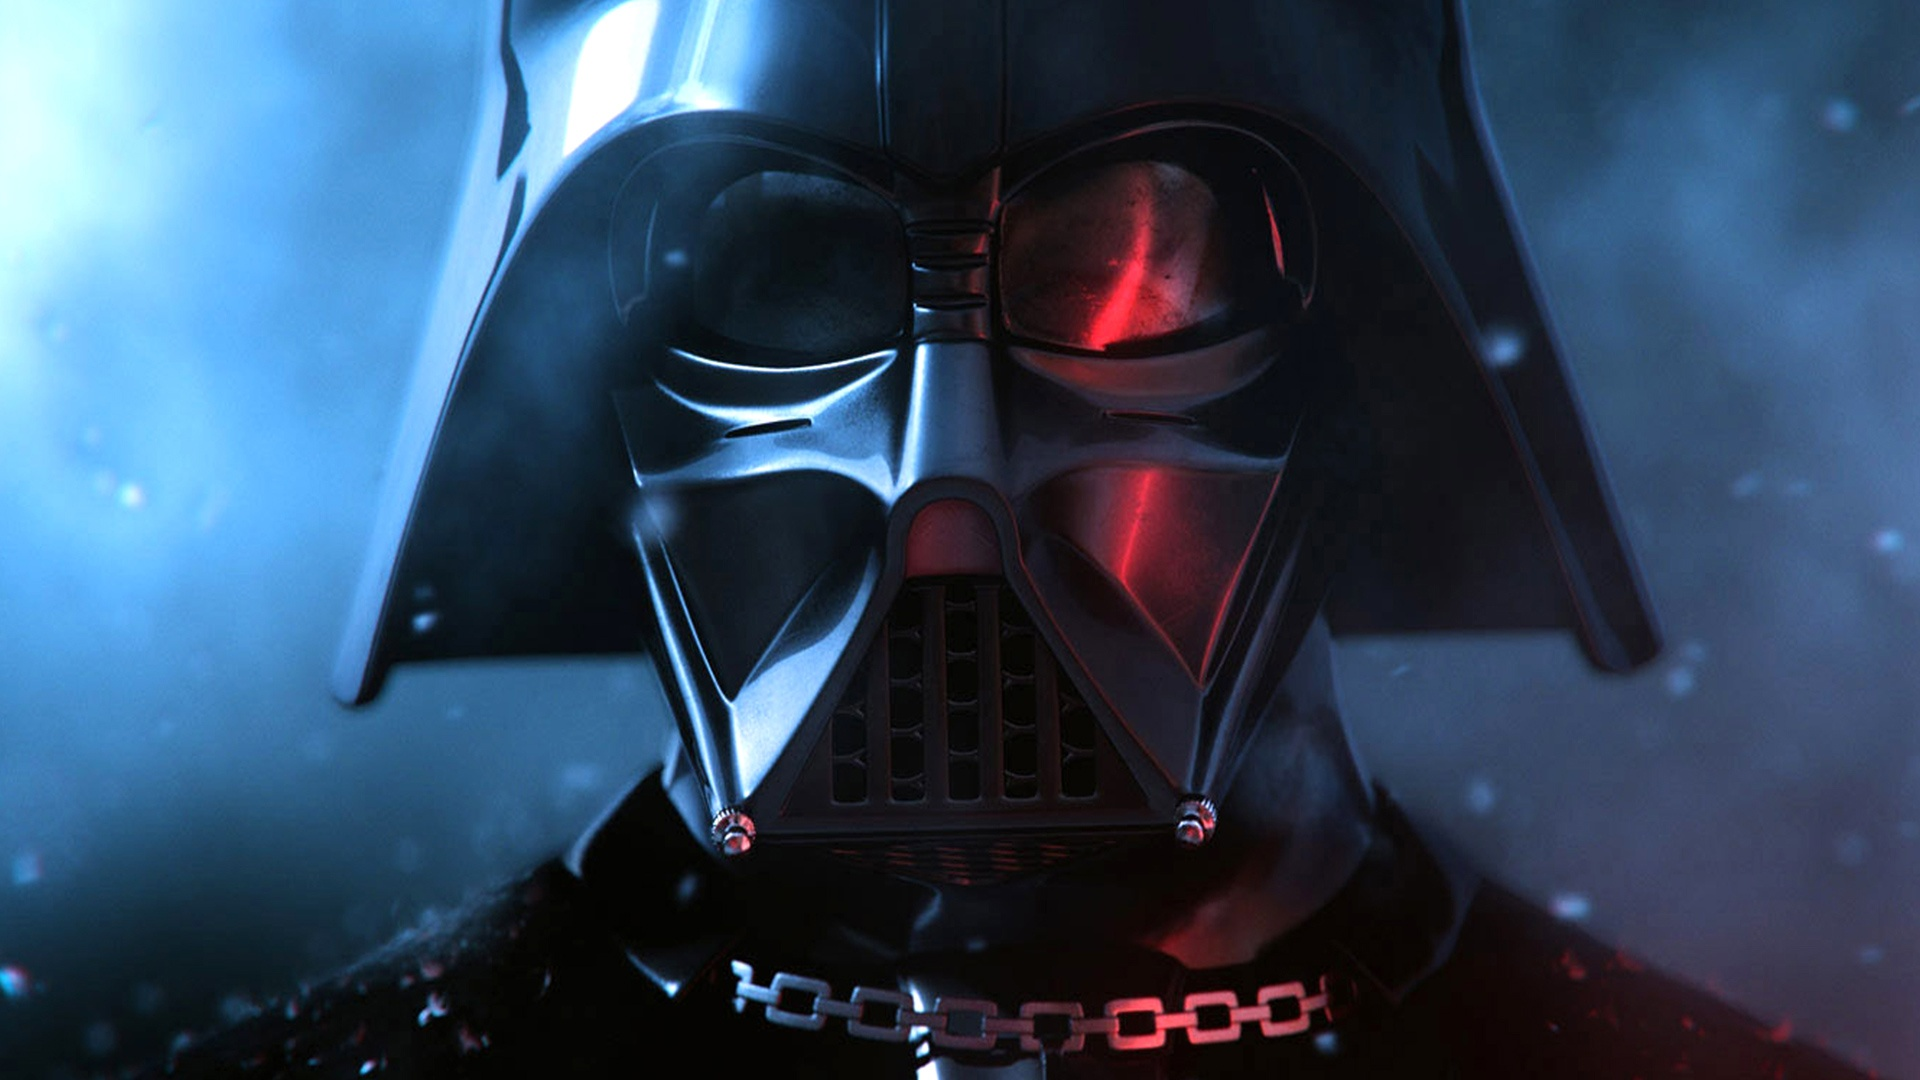 darth_vader-wallpapers-collection-hd